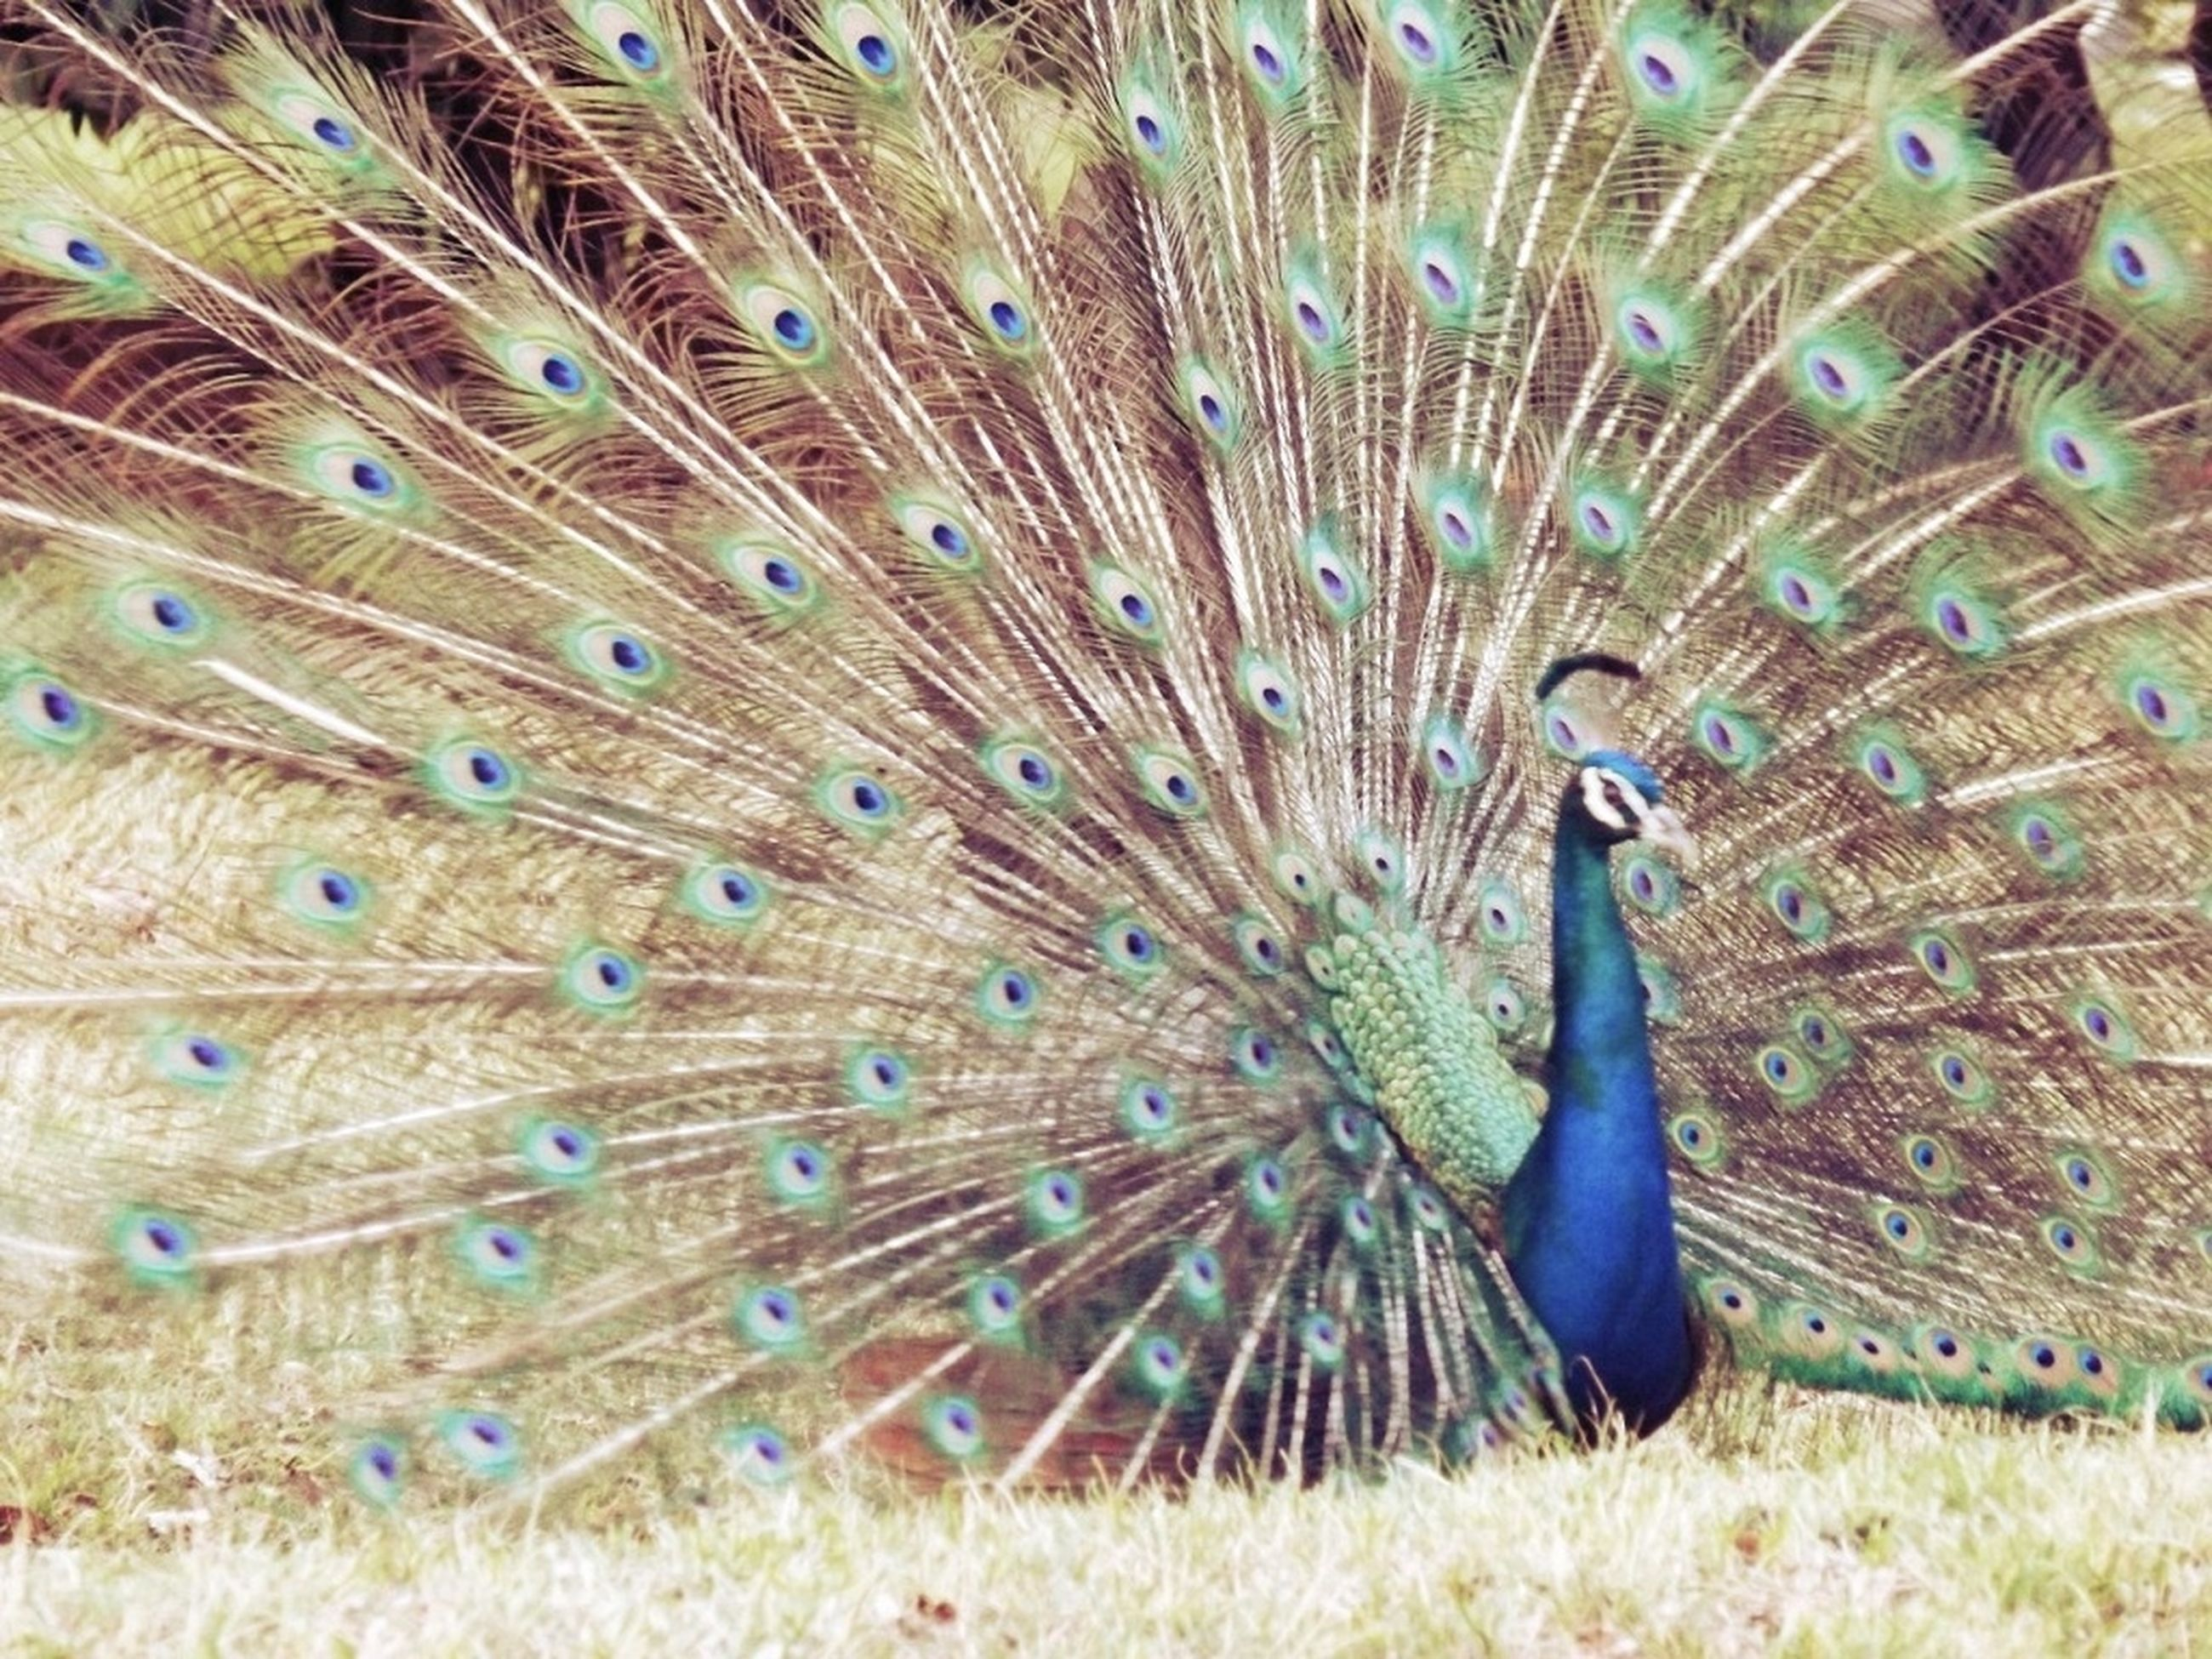 animal themes, animals in the wild, one animal, wildlife, peacock, bird, feather, natural pattern, nature, beauty in nature, close-up, blue, full length, outdoors, day, no people, male animal, zoology, peacock feather, field